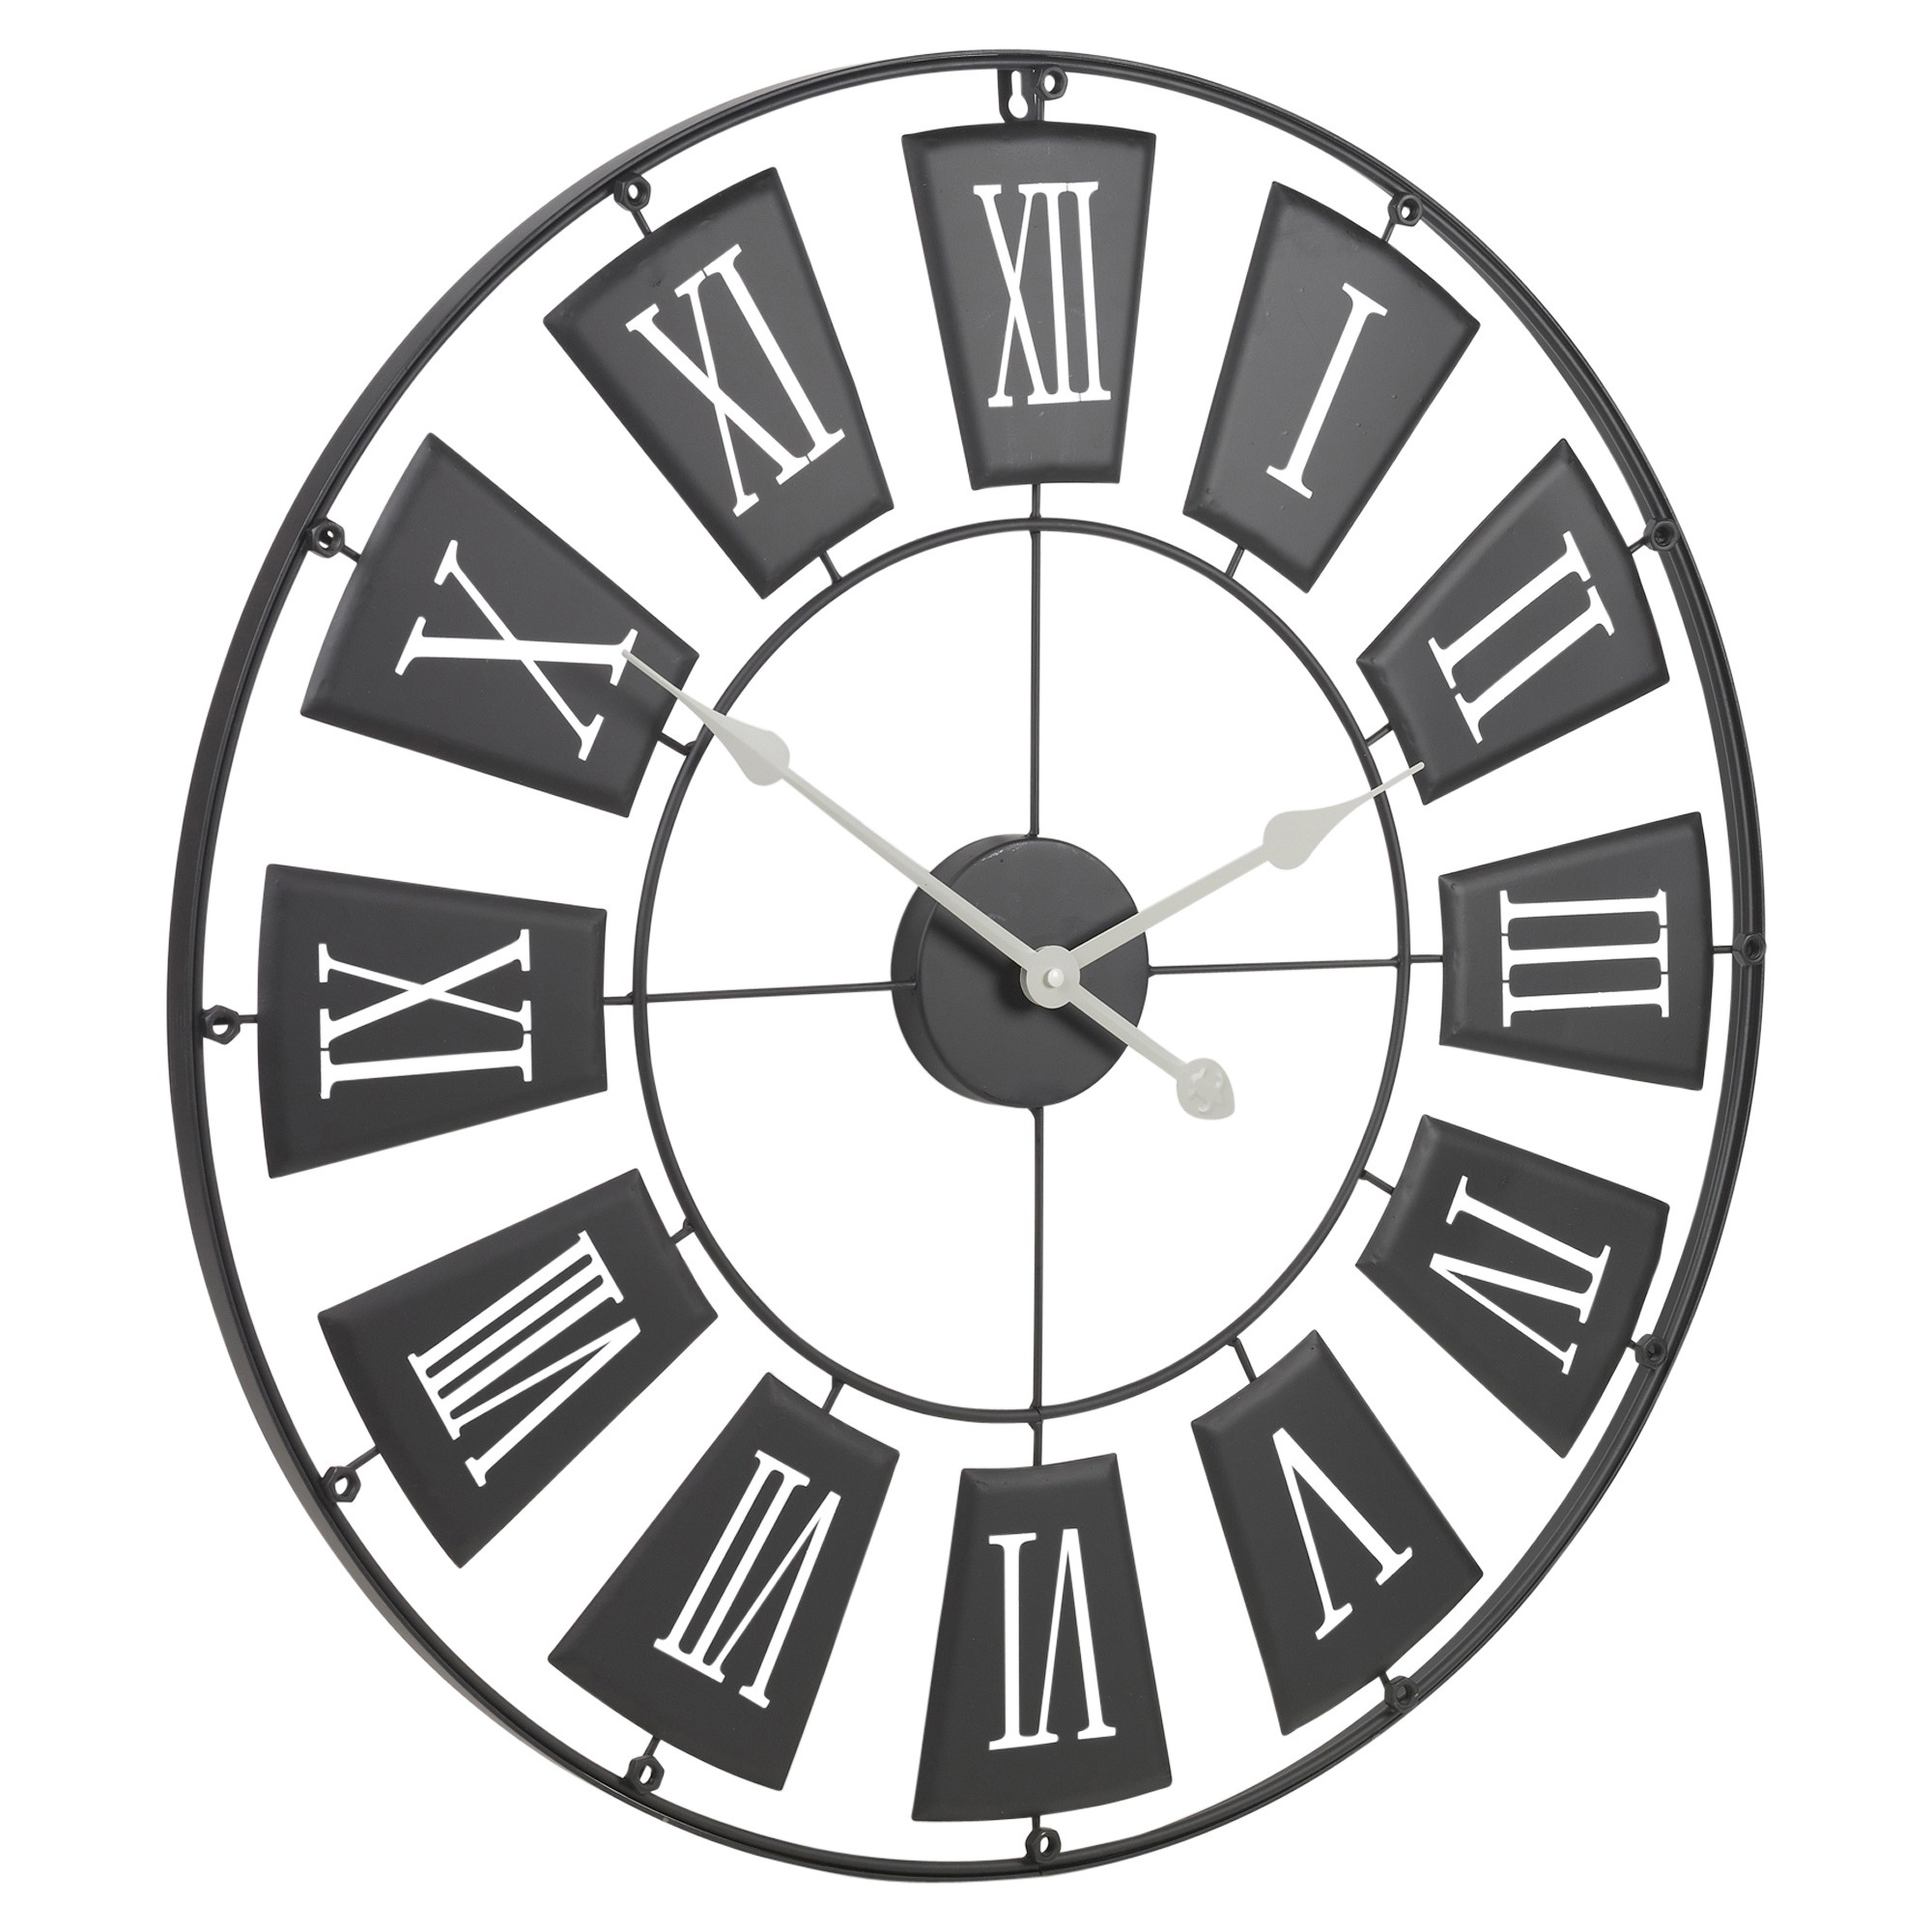 70cm Extra Large Metal Round Wall Clock Roman Numerals ...